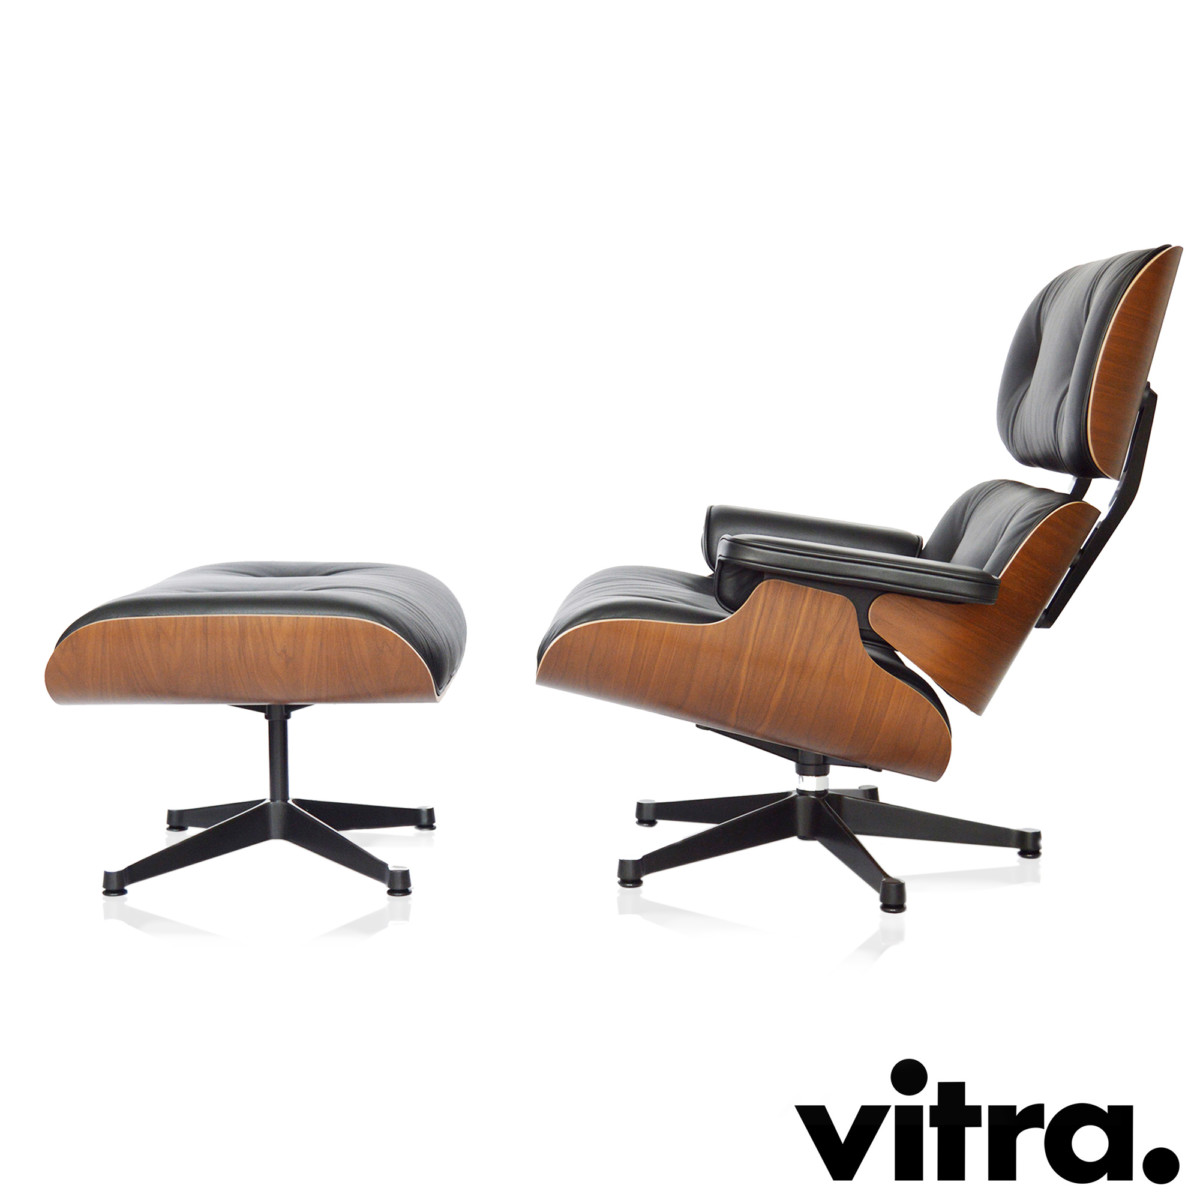 vitra eames lounge chair im design sortiment von kaufen. Black Bedroom Furniture Sets. Home Design Ideas